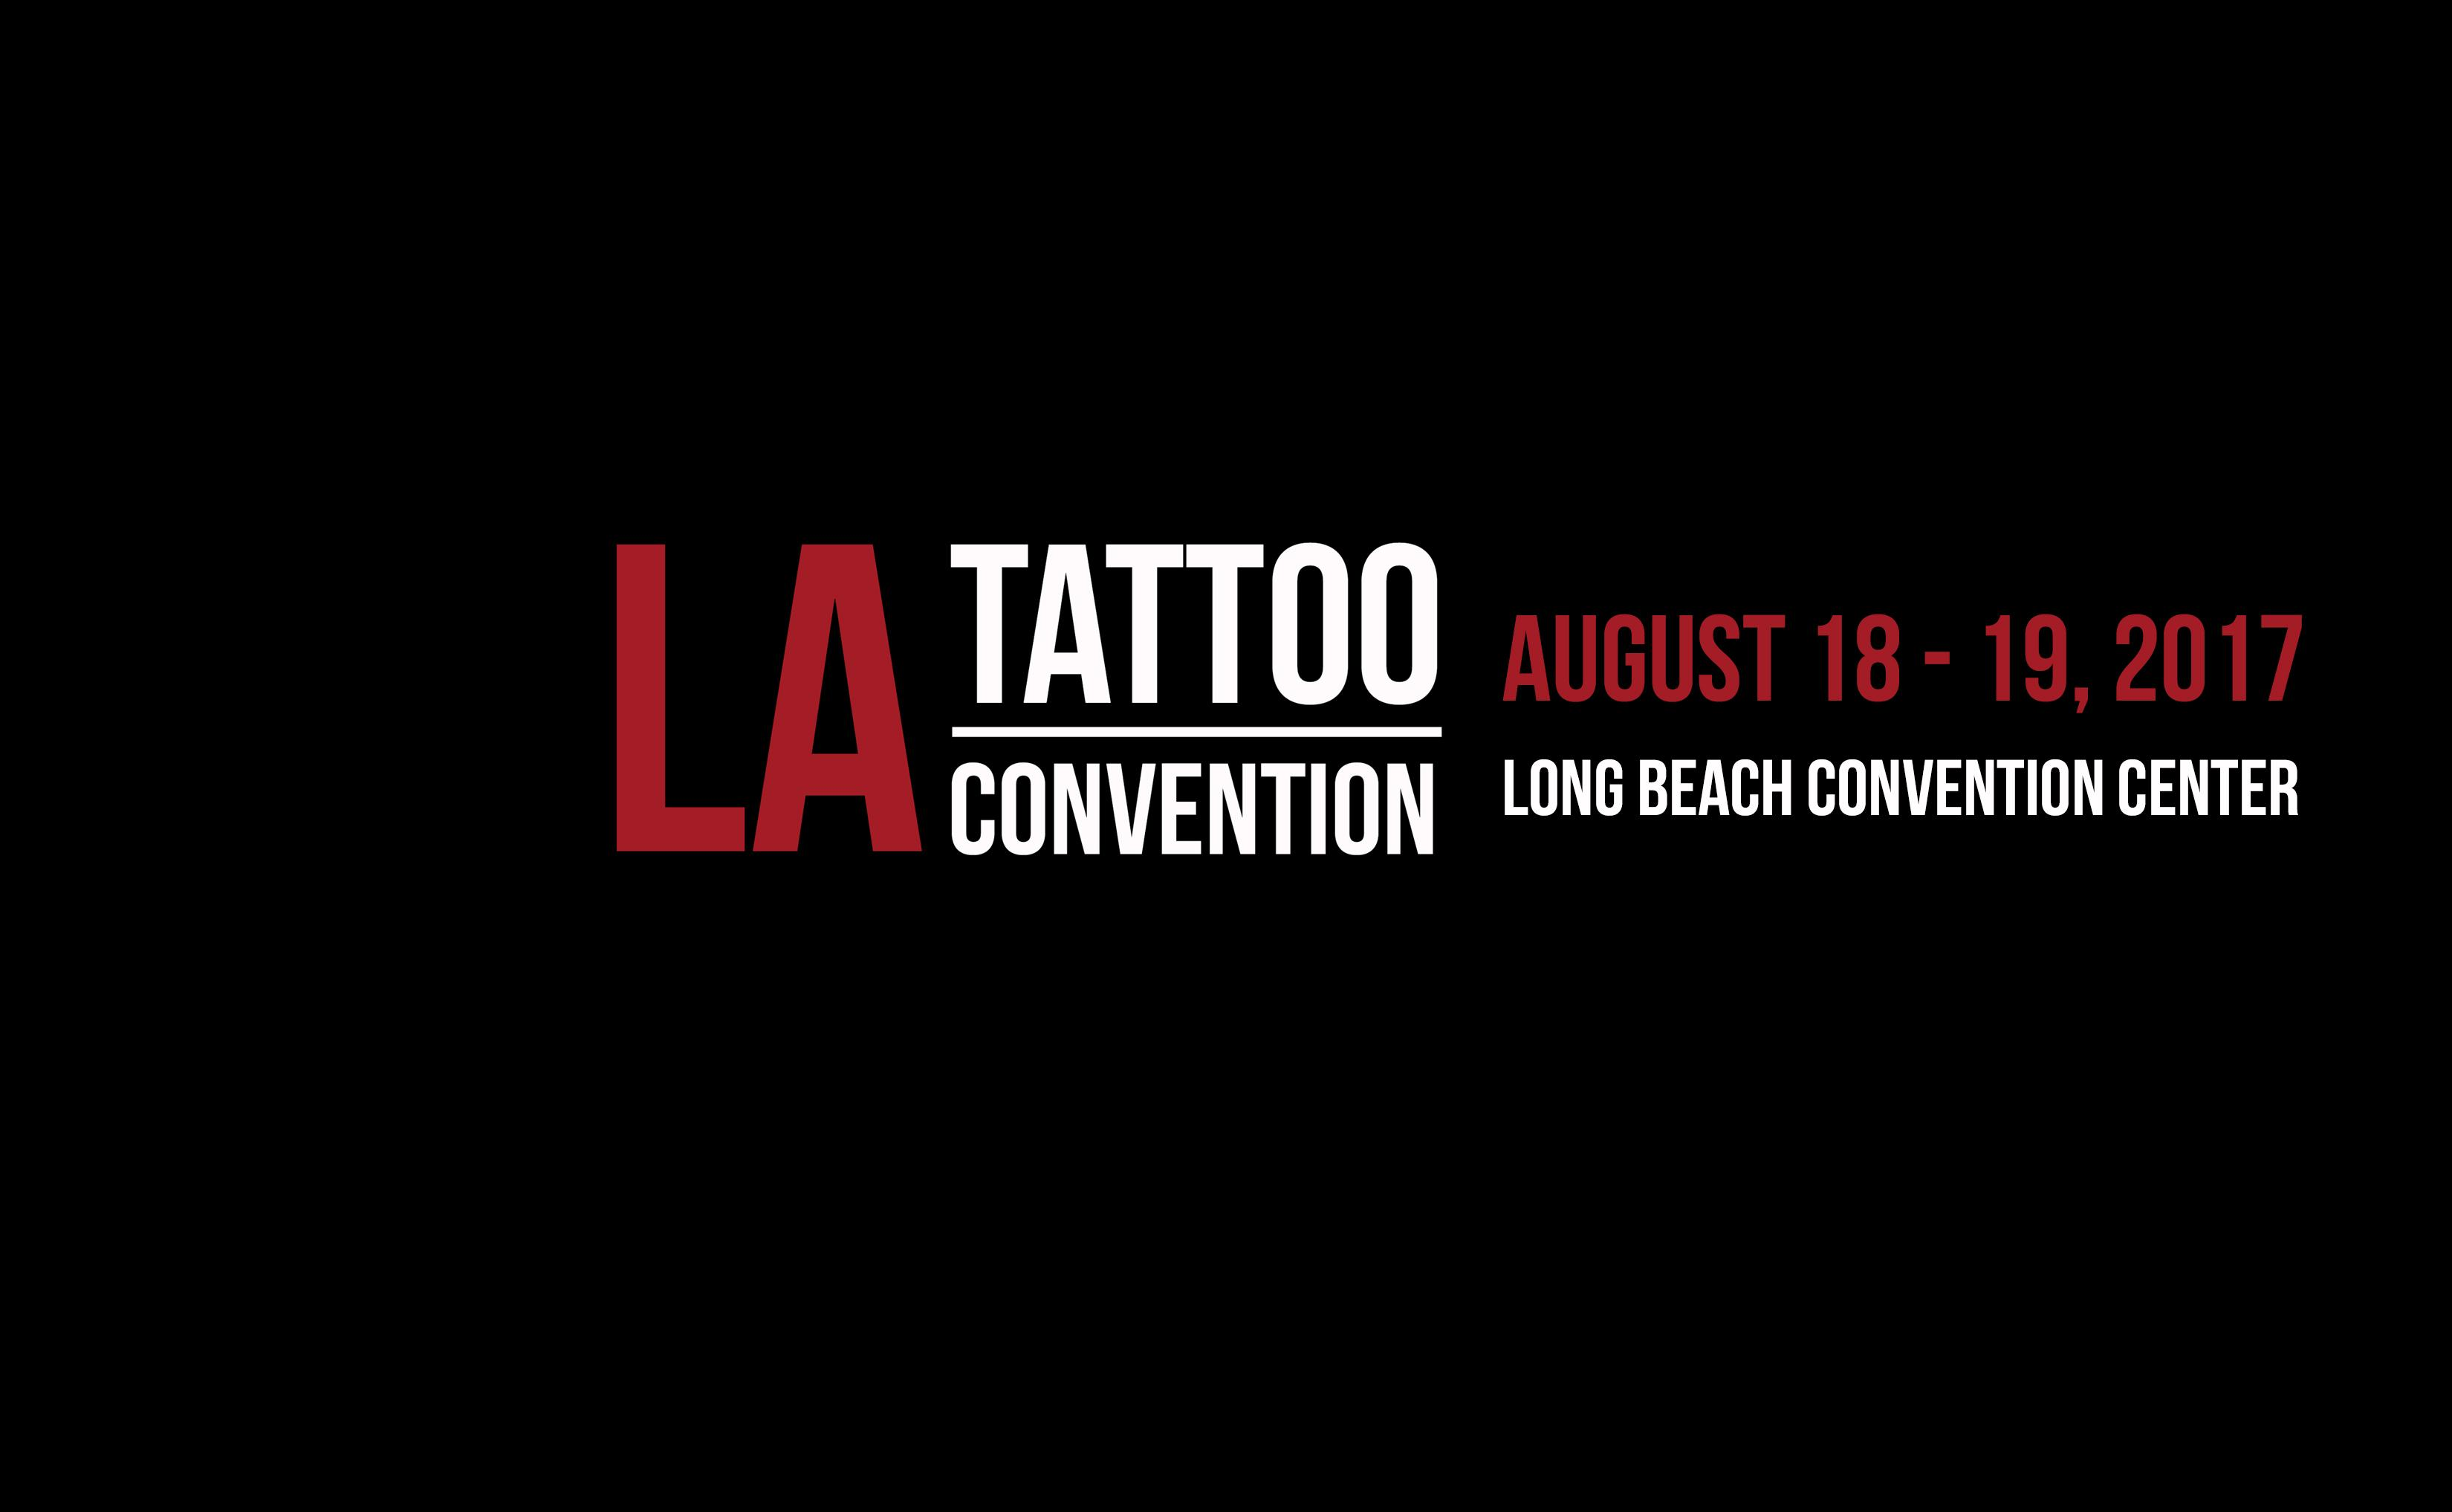 Los Angeles Tattoo Convention